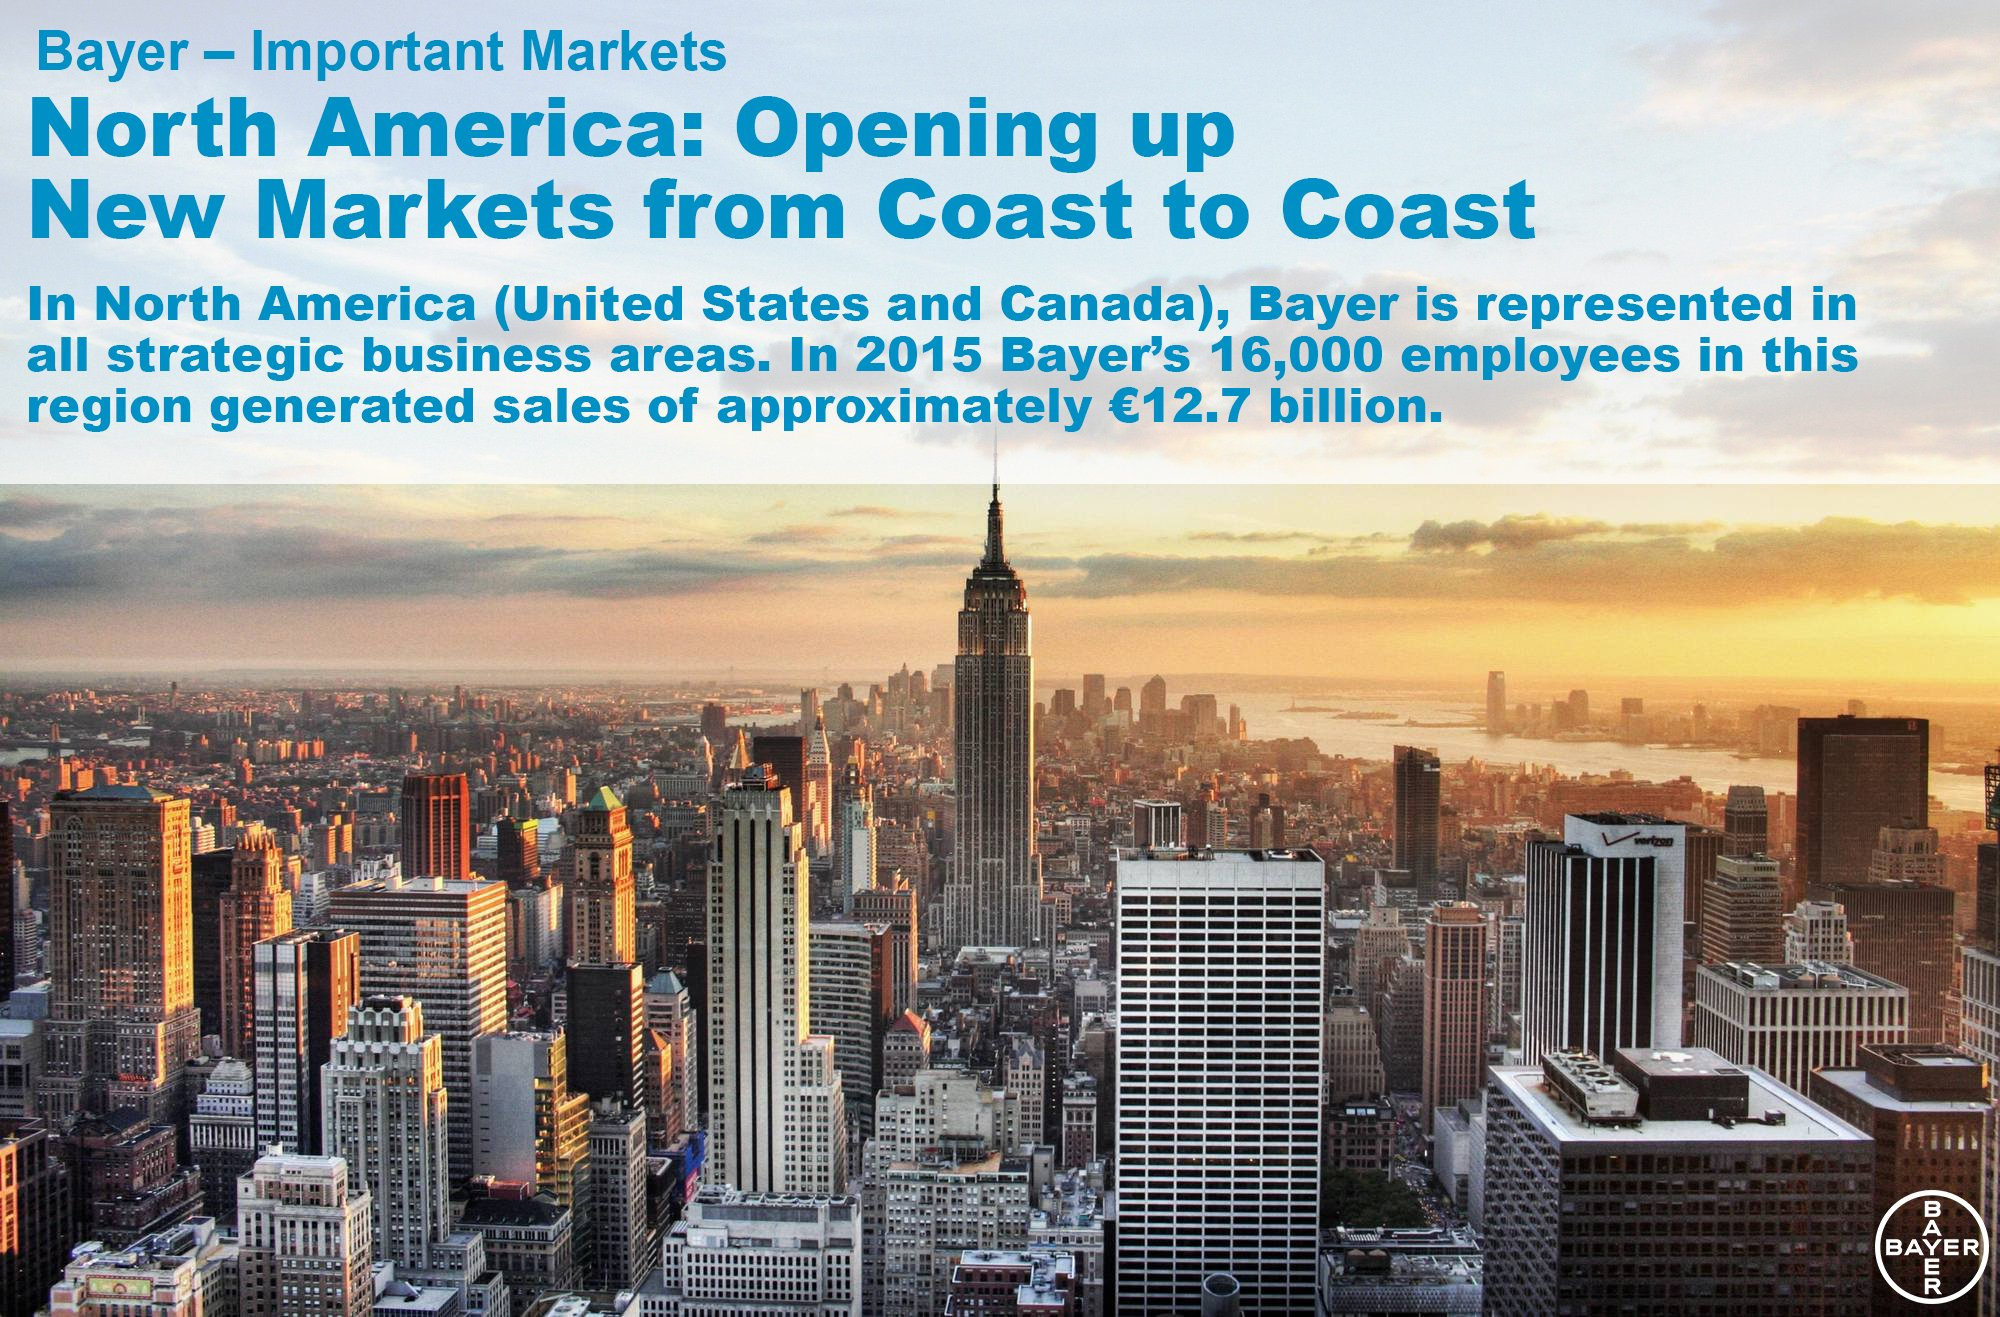 """Bayer AG on Twitter: """"Bayer – #ImportantMarkets North #America: Opening up # New Markets from Coast to Coast https://t.co/LBw3tGRwlS https://t.co/WHEKNUpDNA"""""""